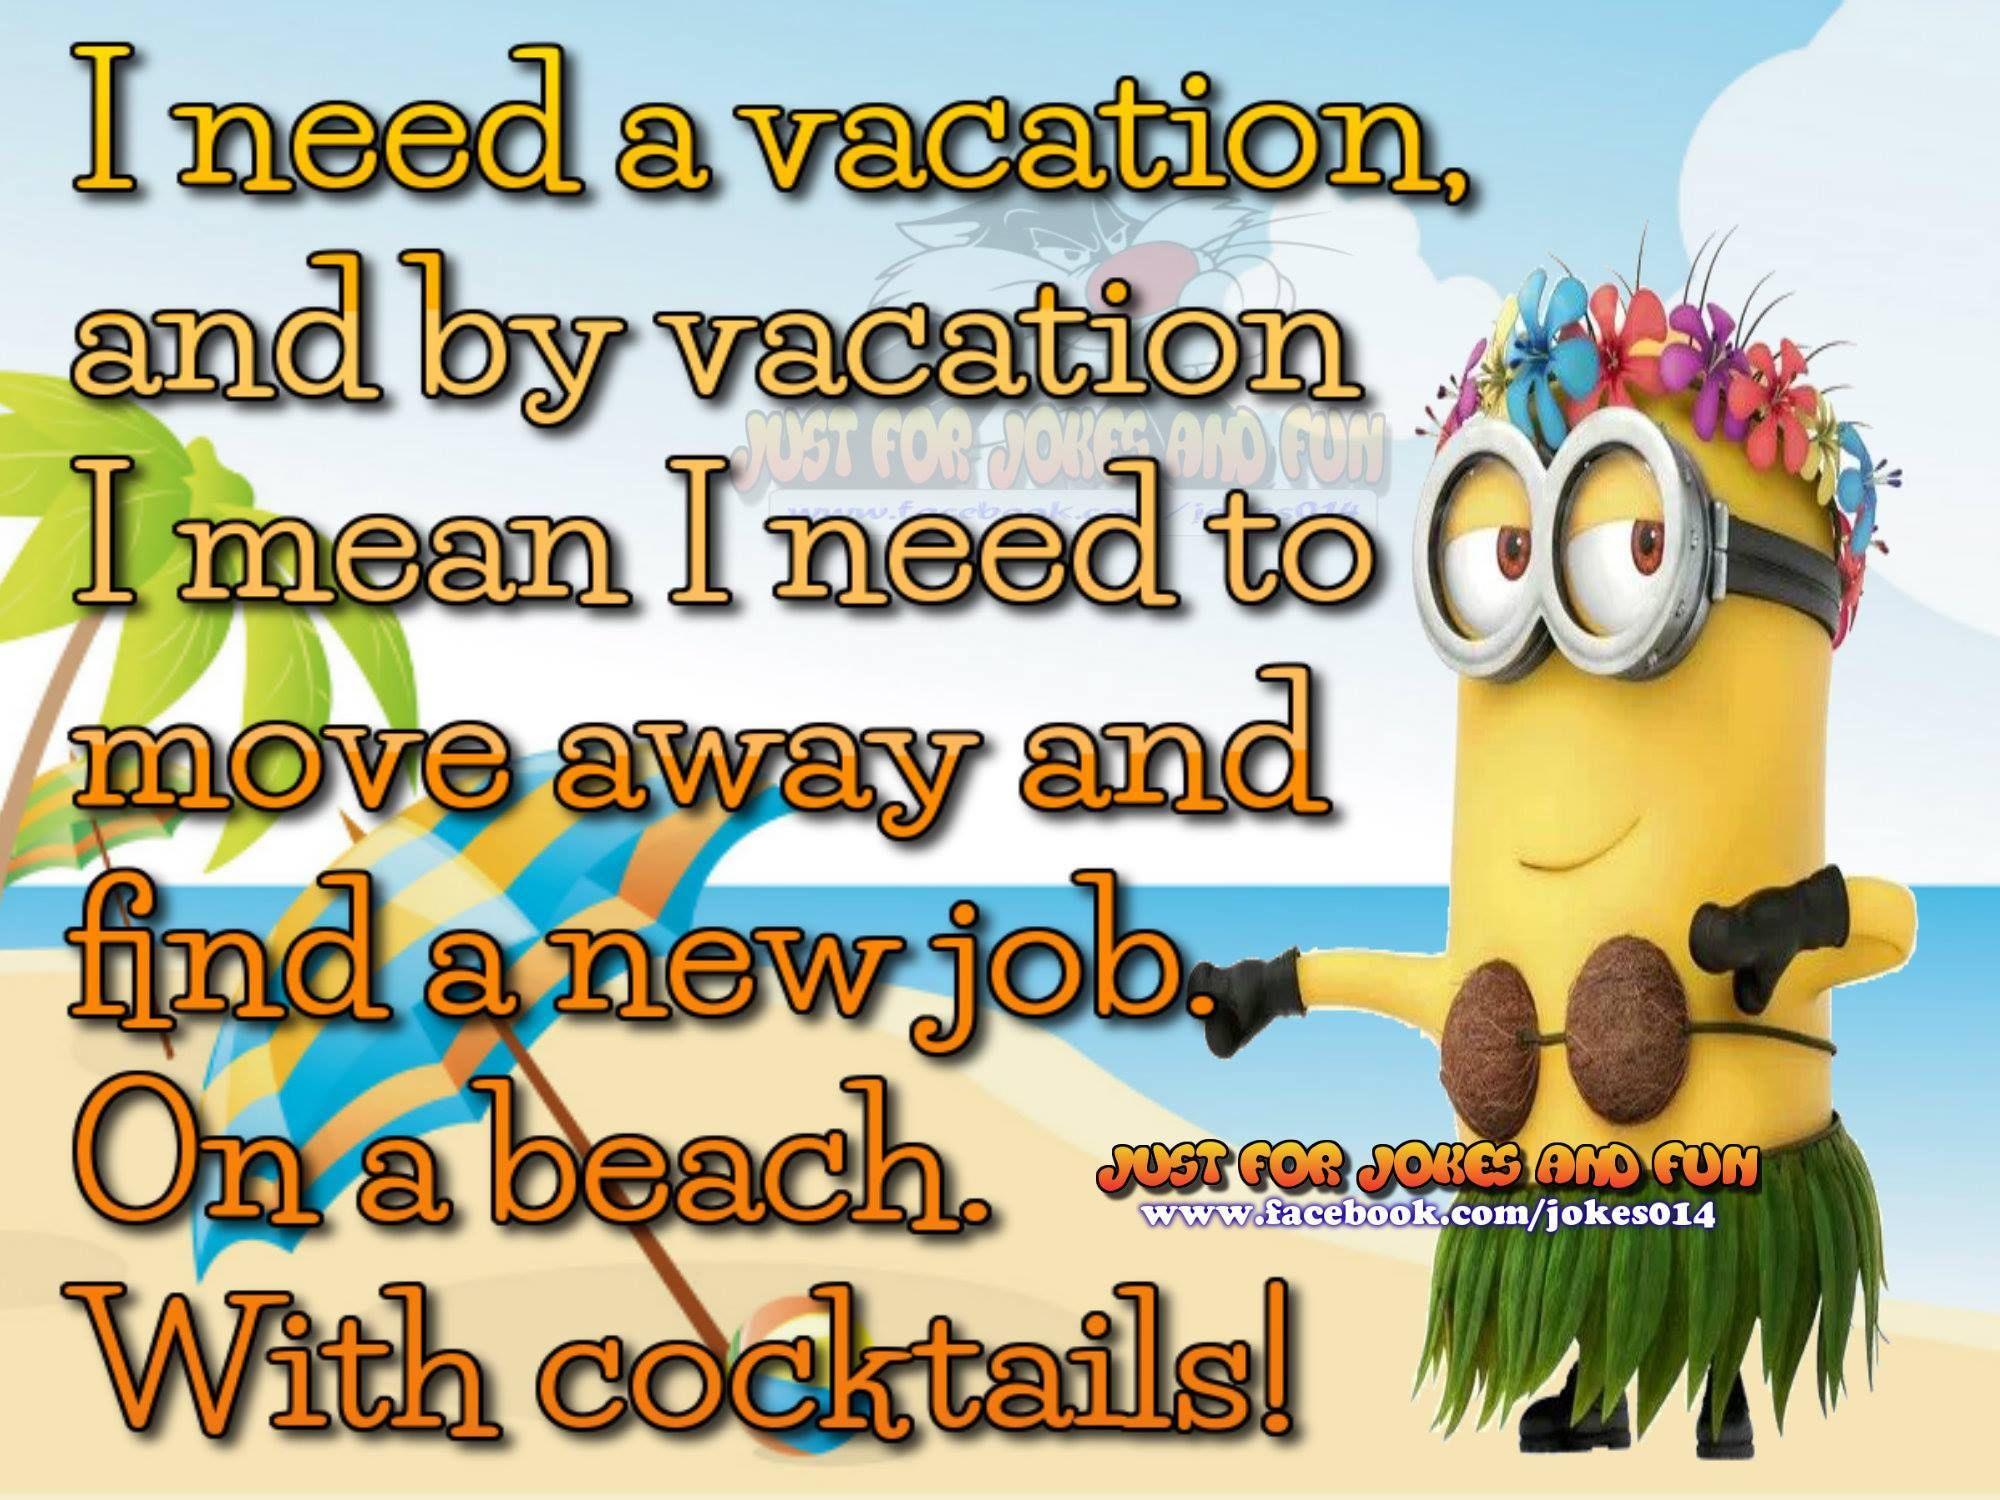 Funny Vacation Quotes I Need A Vacation Funny Minion Quote Pictures, Photos, and Images  Funny Vacation Quotes